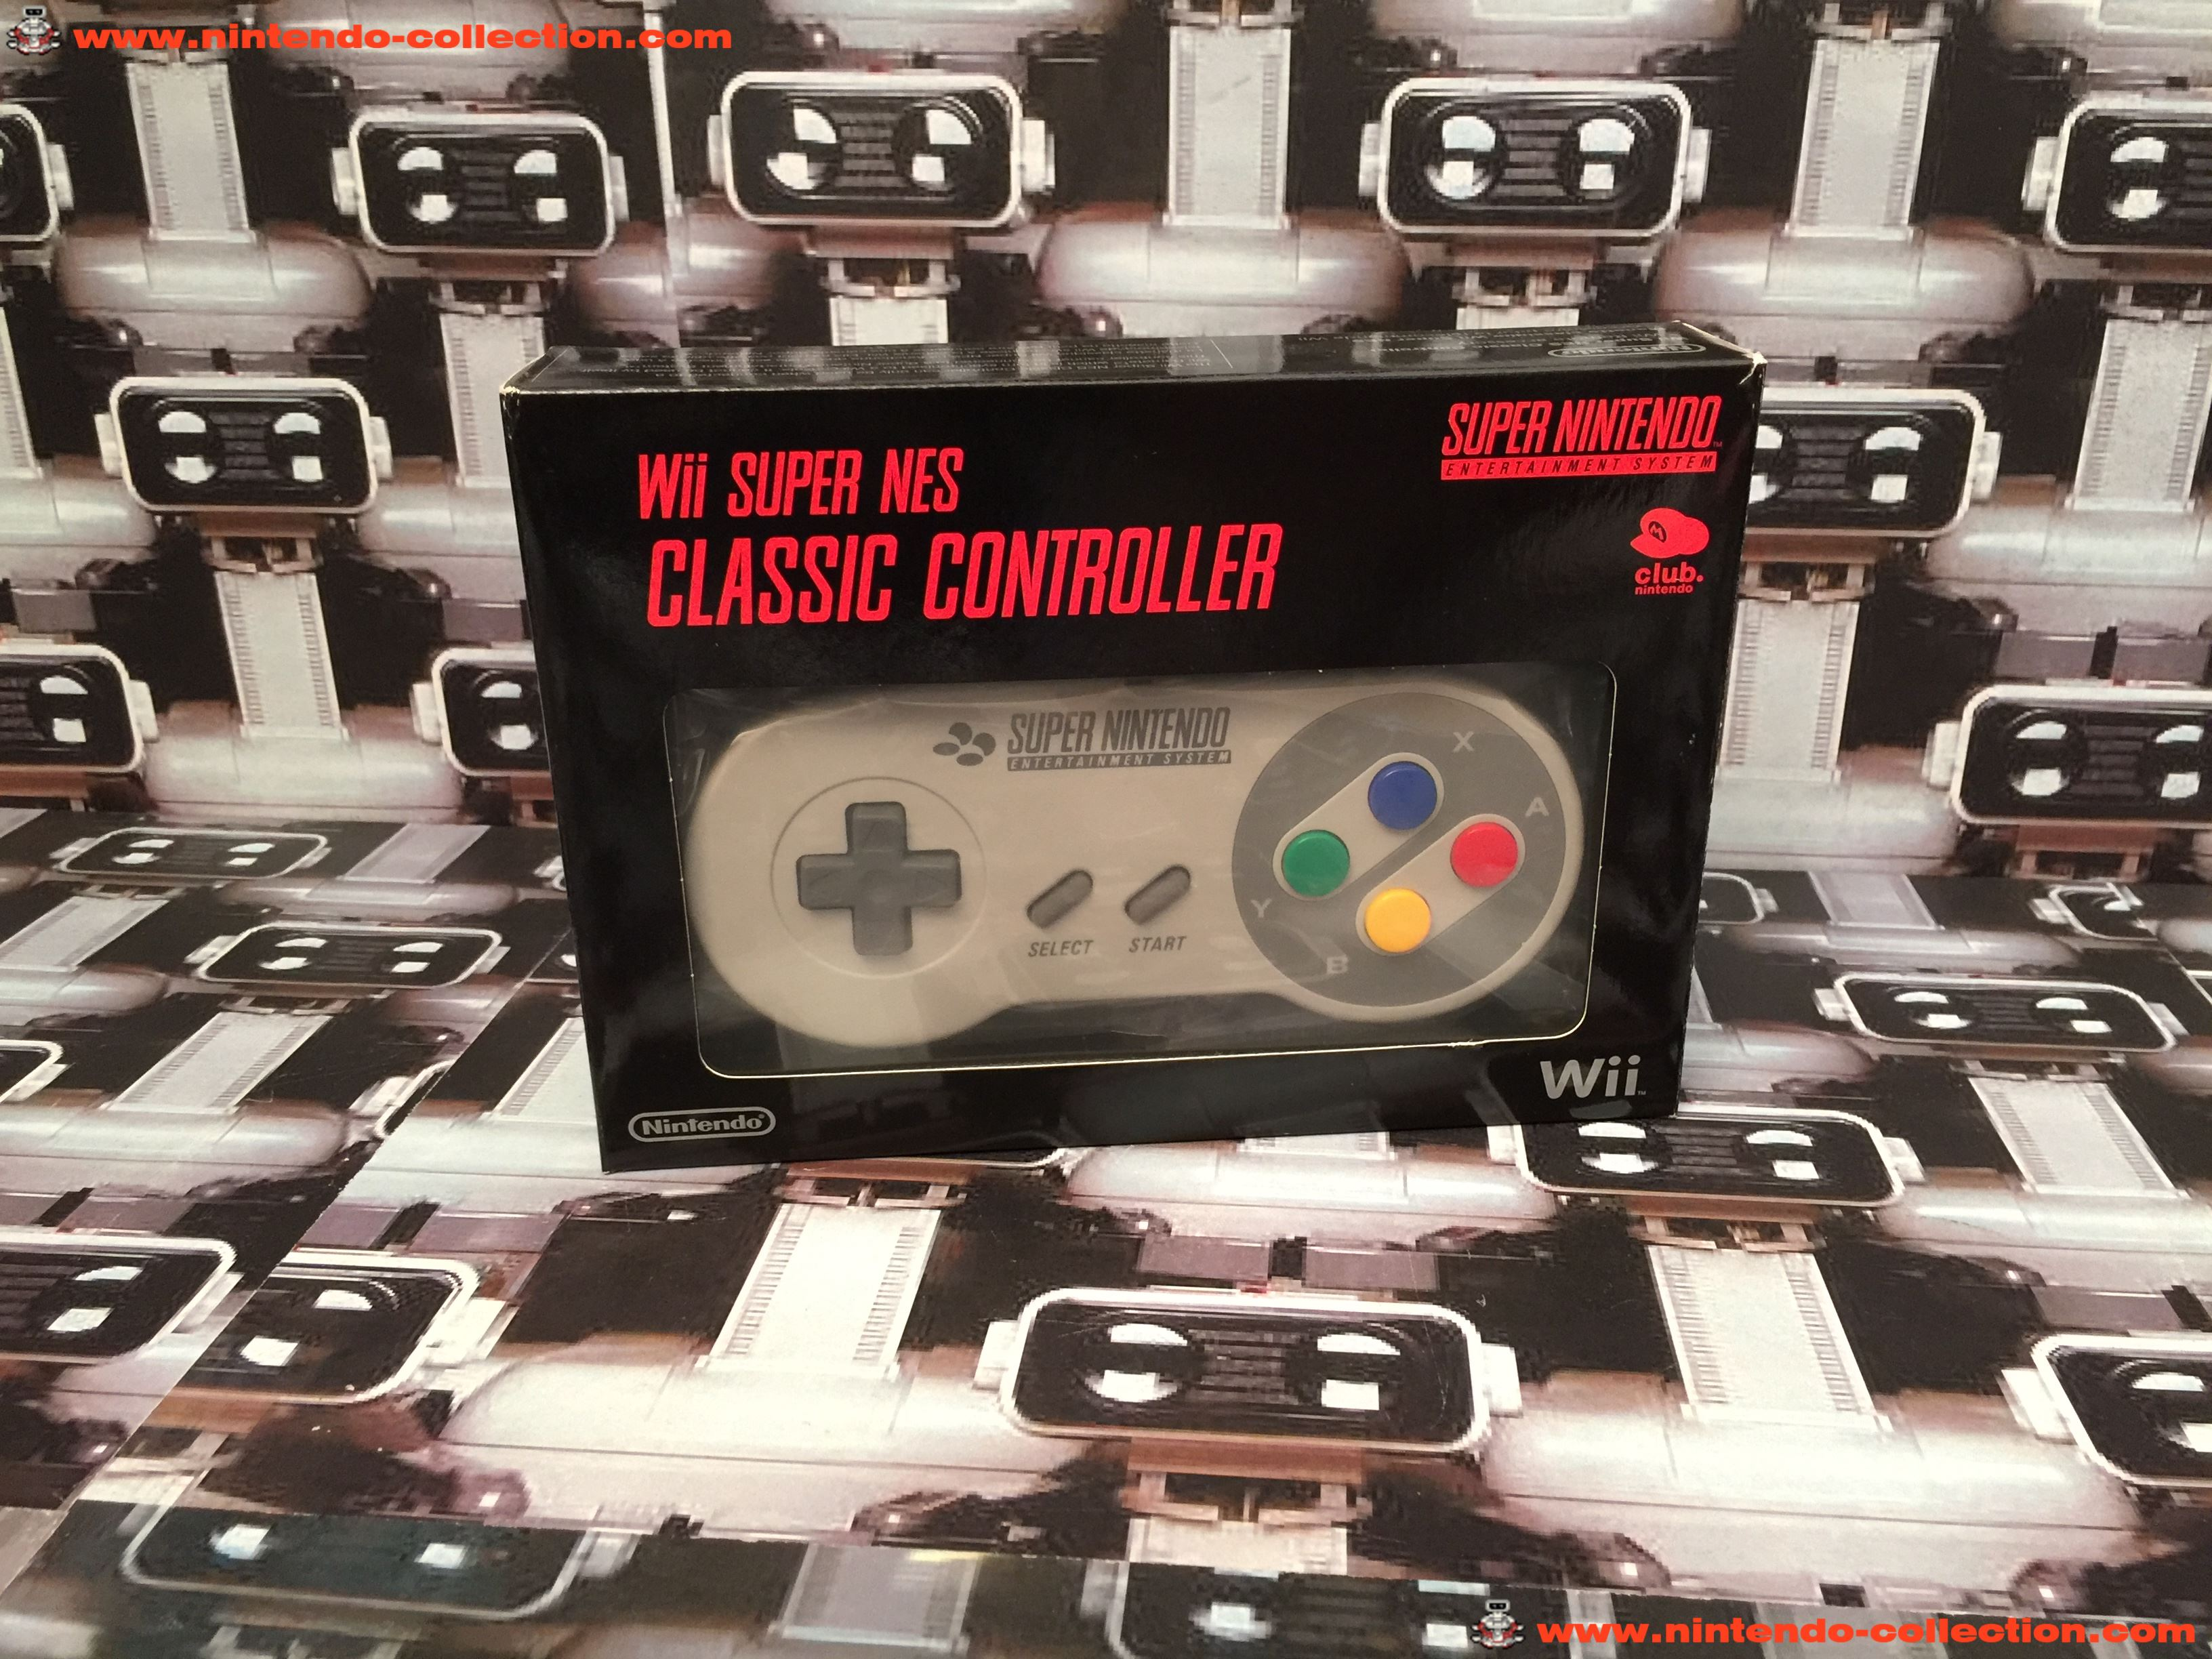 www.nintendo-collection.com - Nintendo Wii Accessoire Wii Super Nes Classic Controller Mnette  Club